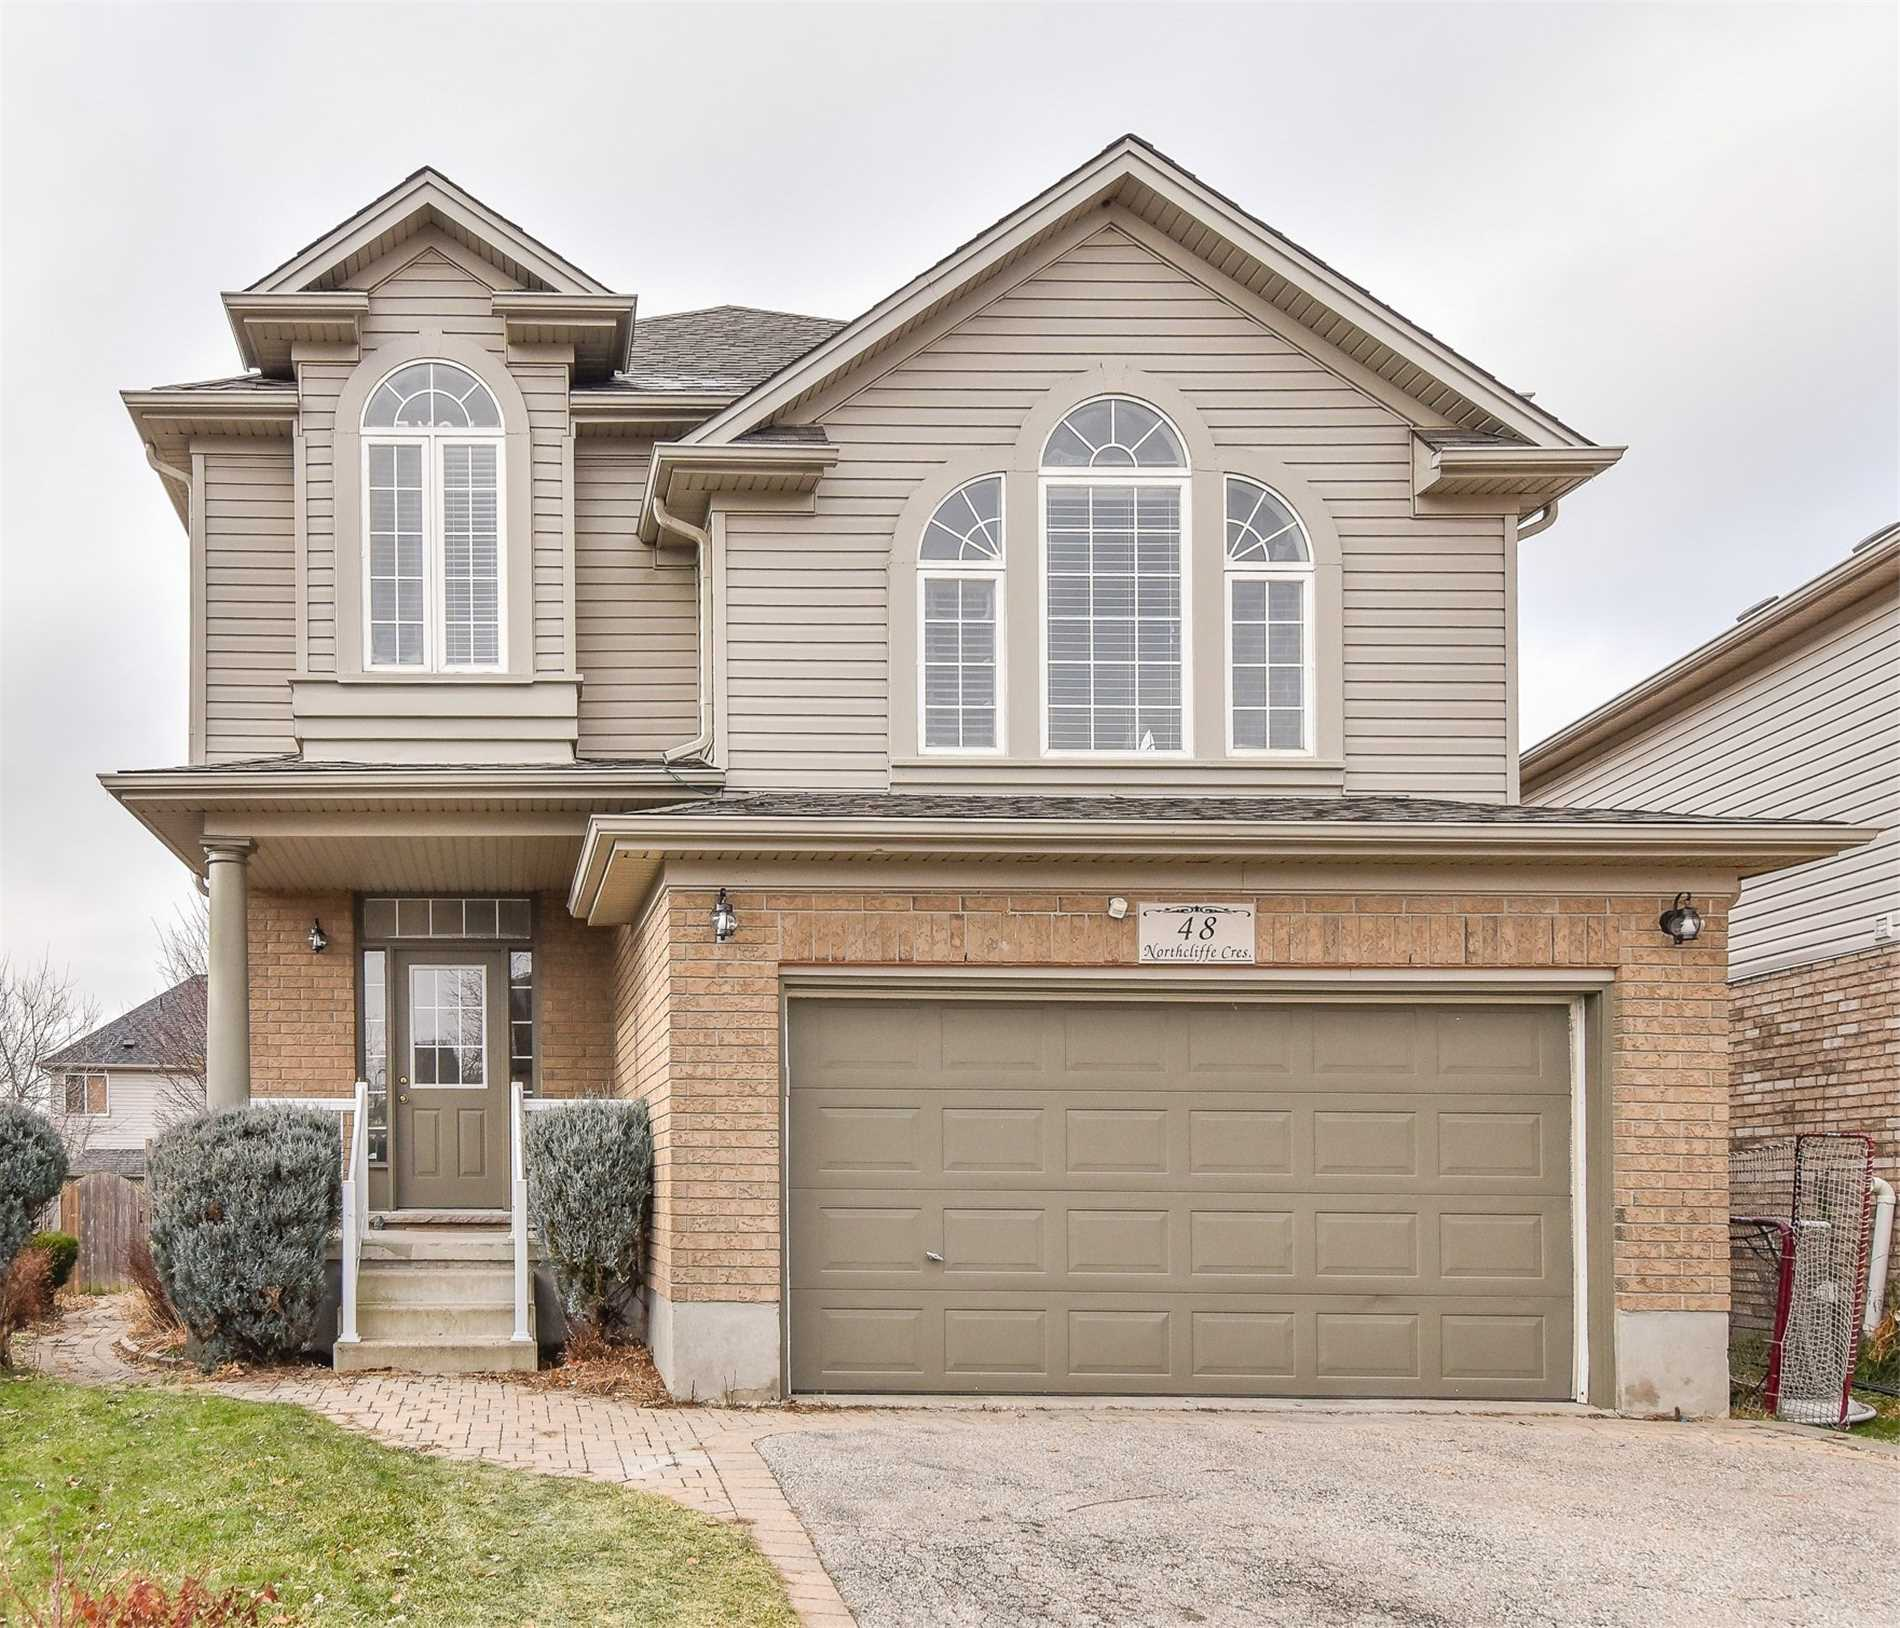 House for sale at 48 Northcliffe Crescent Cambridge Ontario - MLS: X4330705